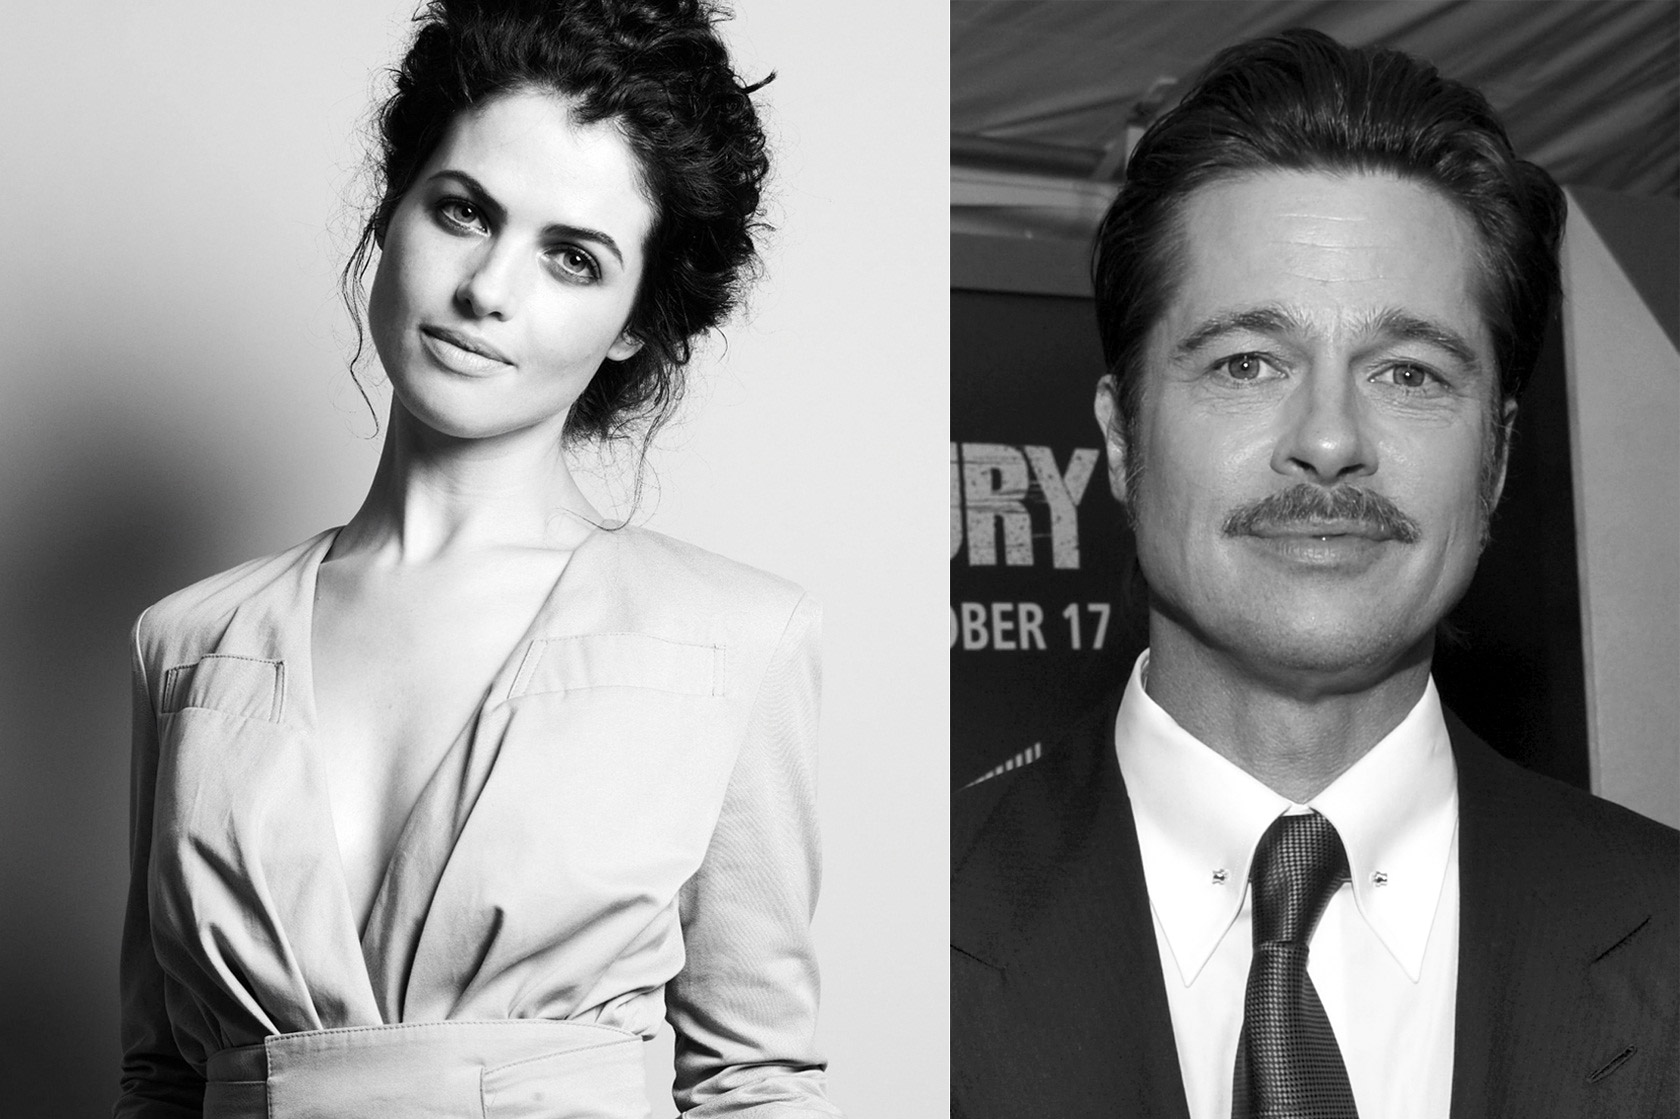 Brad Pitt And Neri Oxman Actor And Architect Metalocus